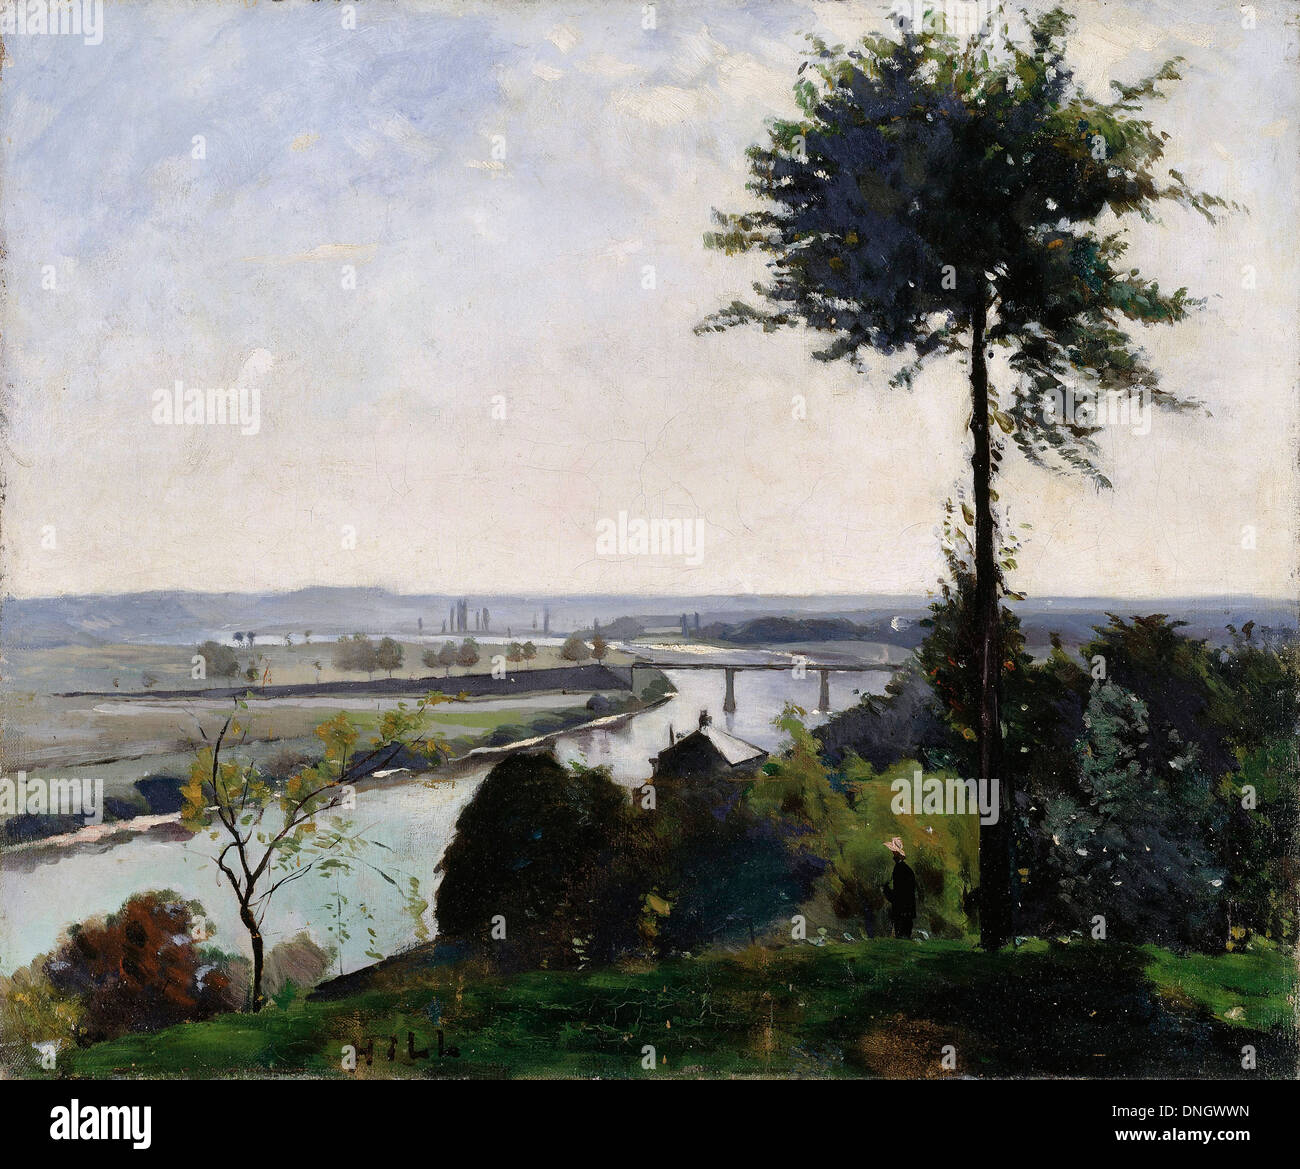 Carl Fredrik Hill, The Tree and the River III. 1877 Oil on canvas. Nationalmuseum, Stockholm, Sweden. Stock Photo